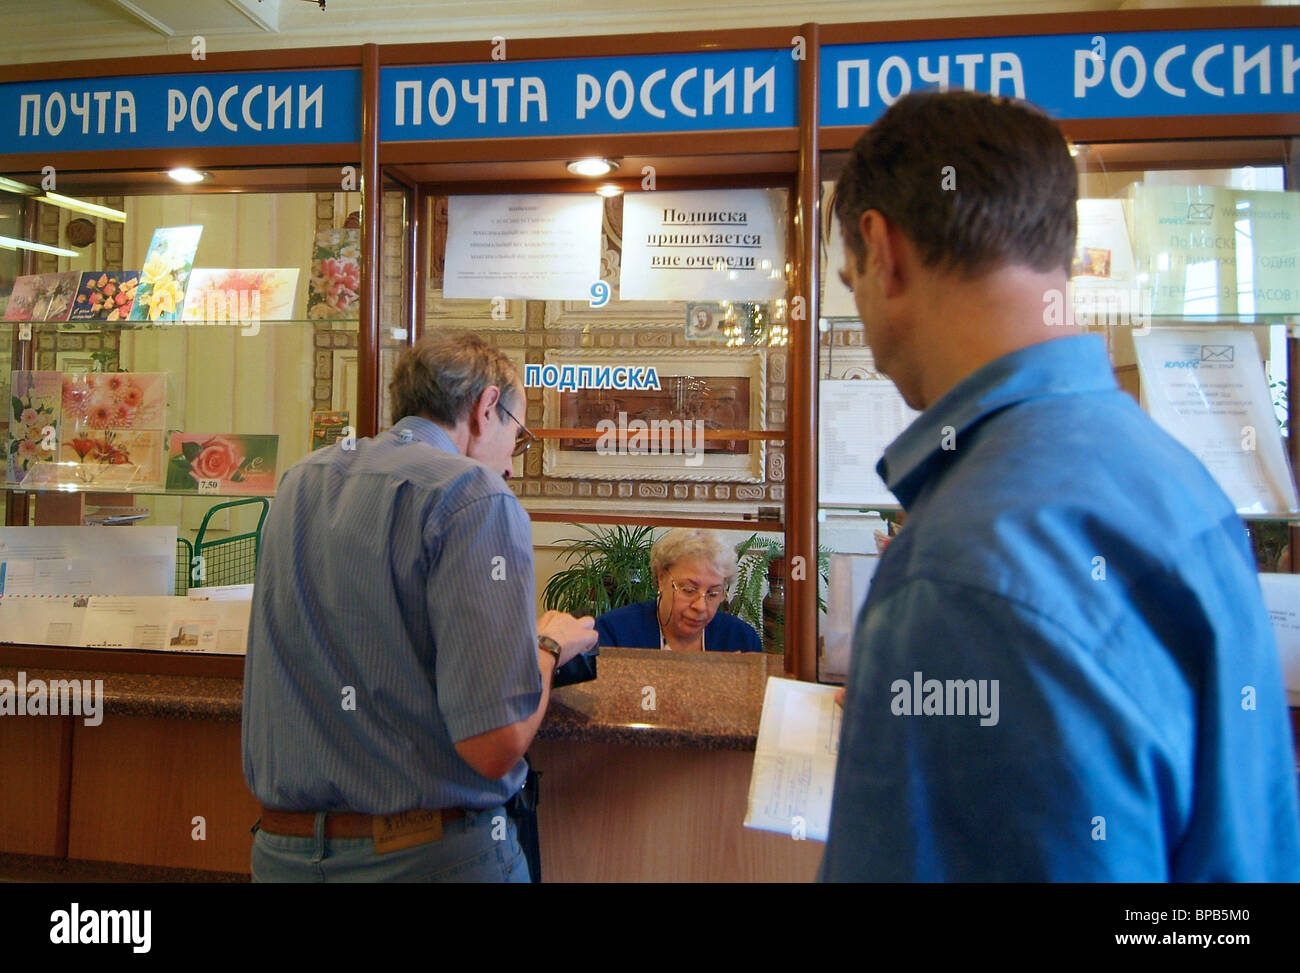 Russian Postal Service to mark its professional holiday on July 10 - Stock Image